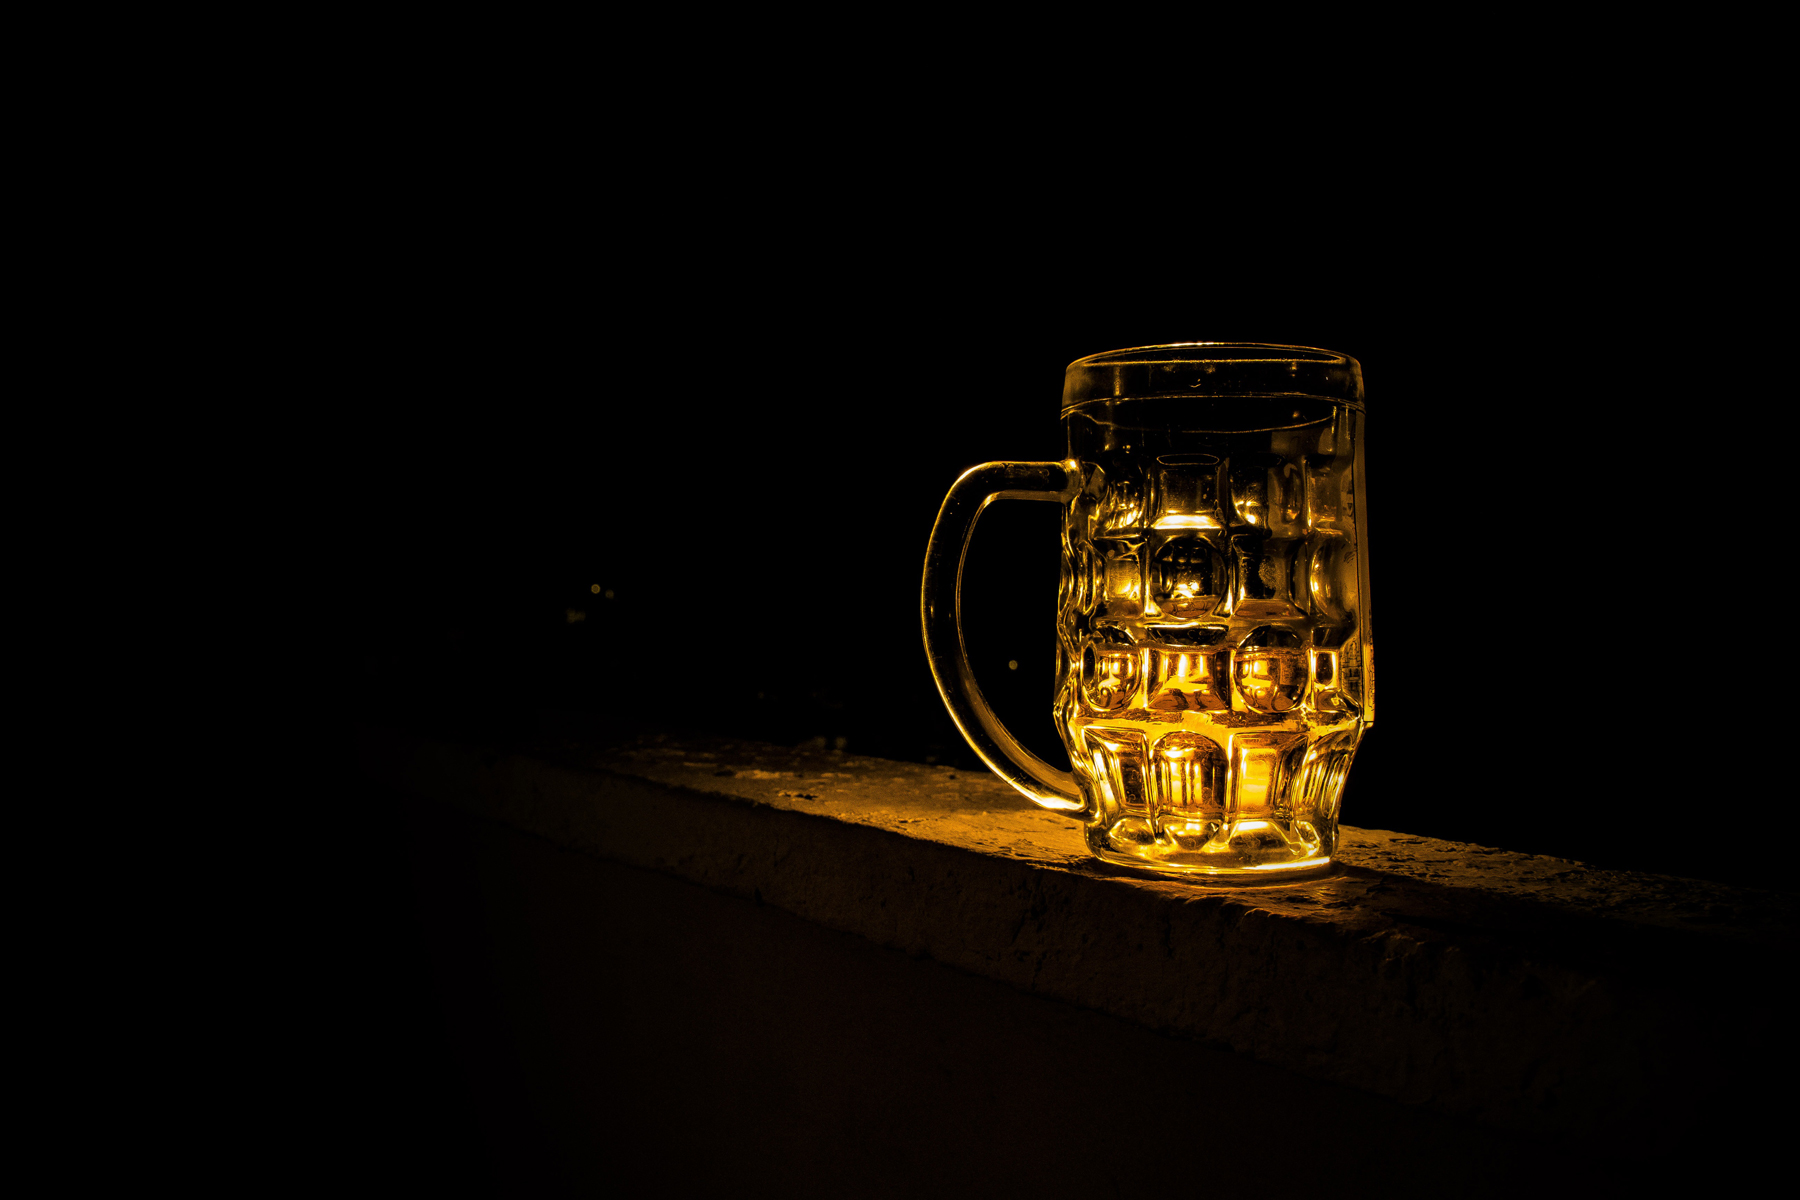 A beer glass on a table in a dark room